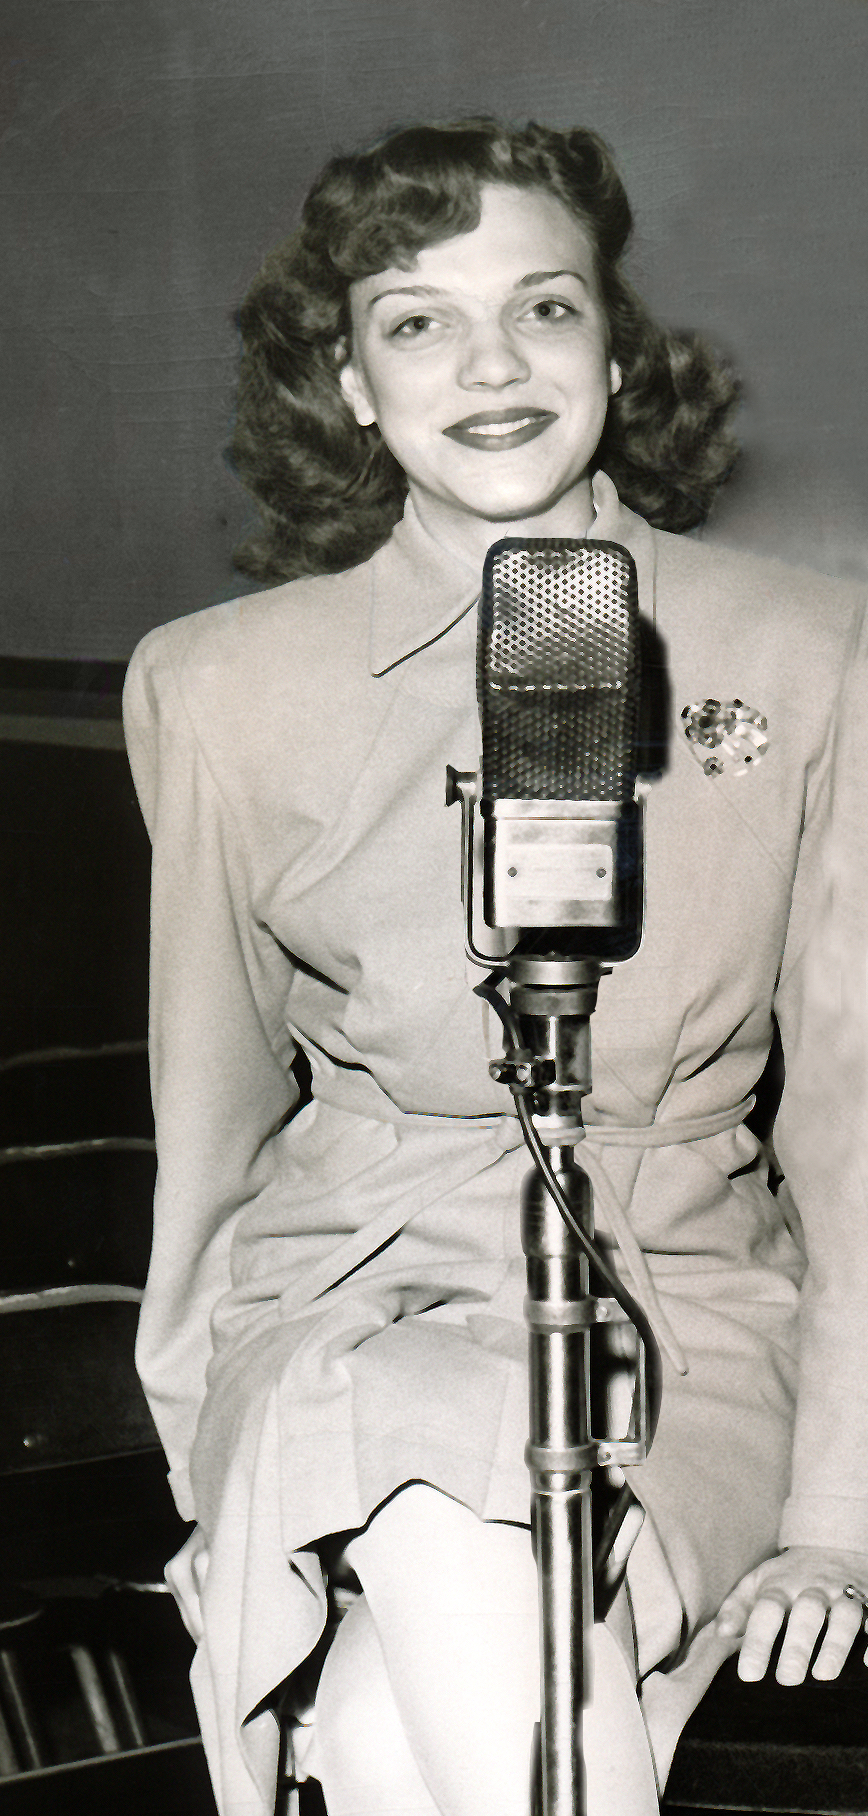 BLO at Mic - May, 1947-Edited-2.jpg